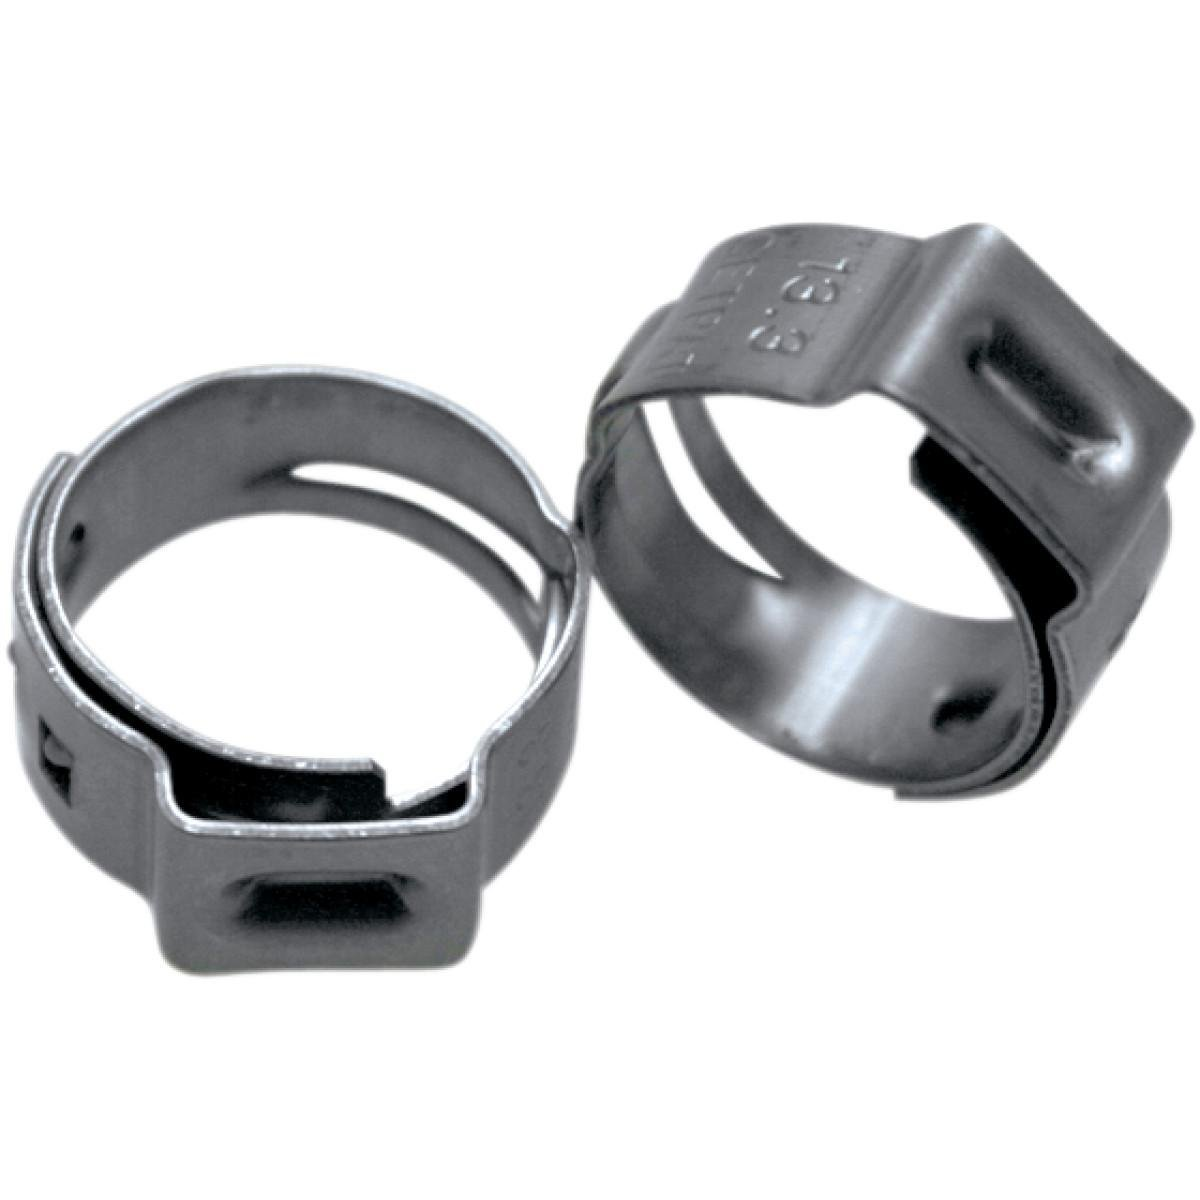 Motion Pro Stepless Clamps 10 Pack 7.8-9.5MM Z15-0043